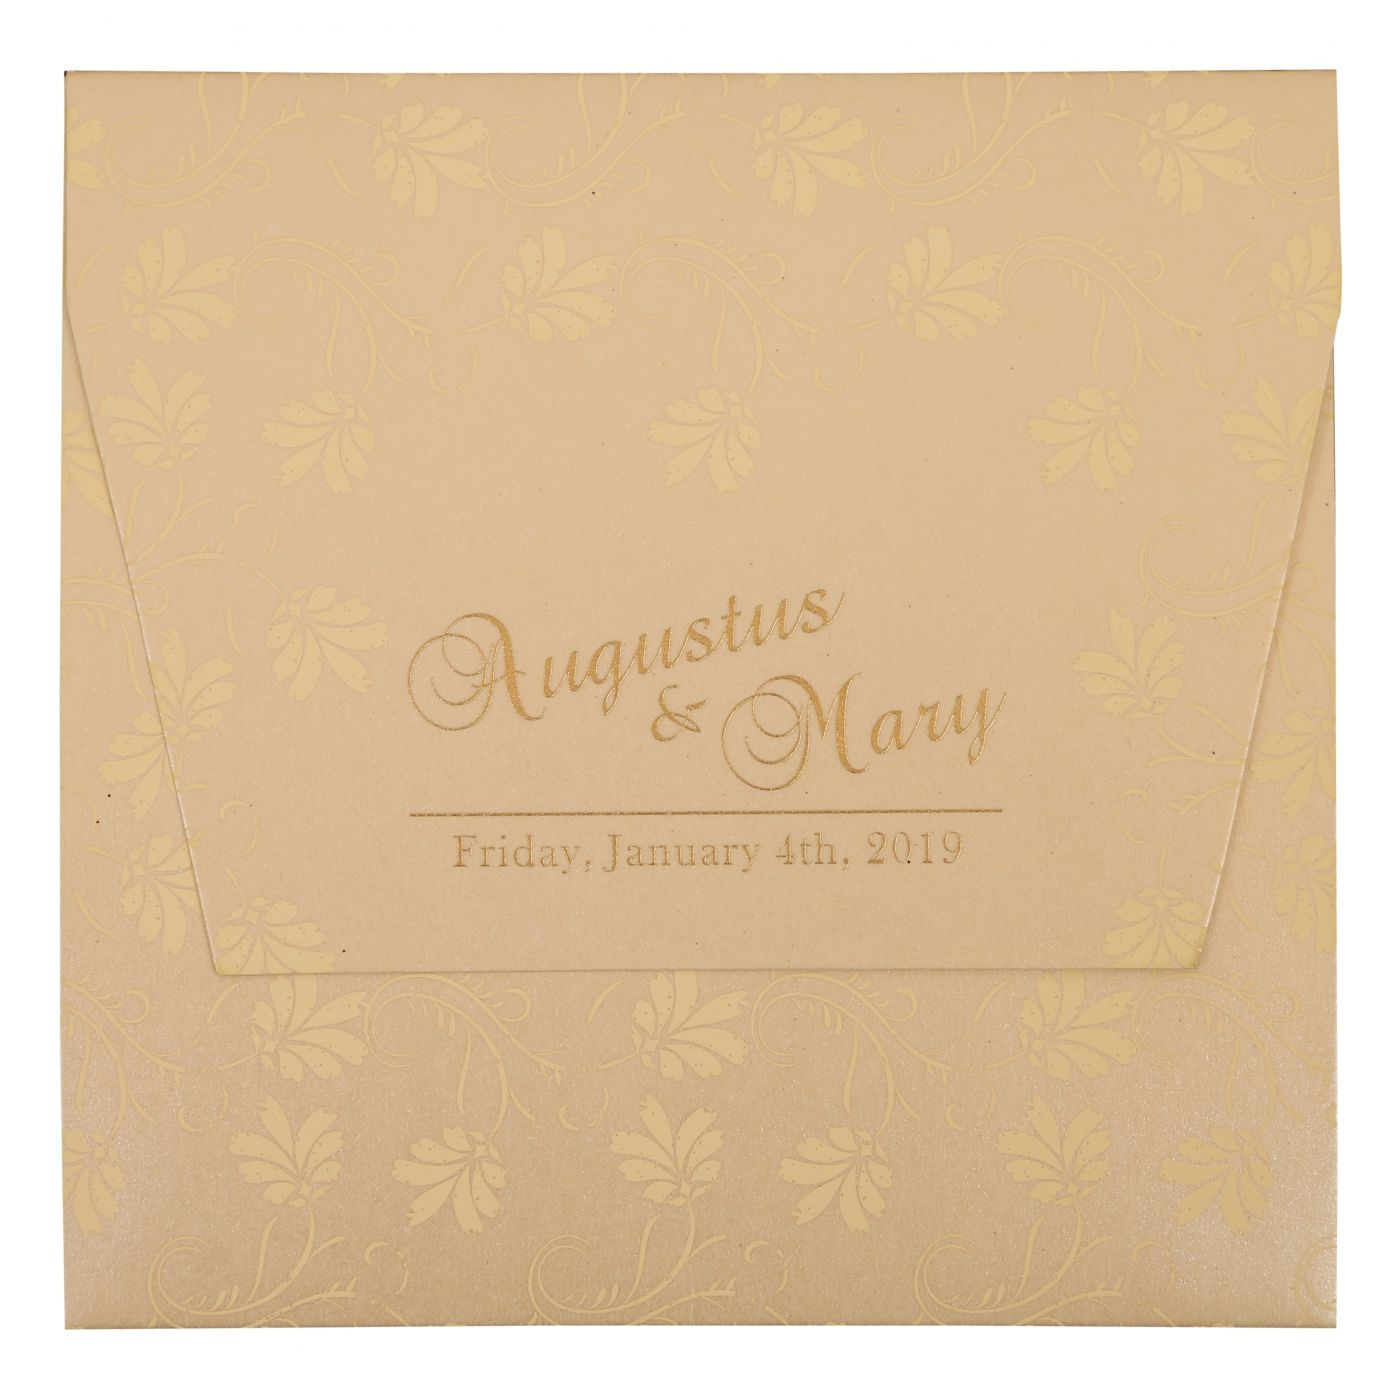 BEIGE SHIMMERY SCREEN PRINTED WEDDING INVITATION : CW-803E - IndianWeddingCards